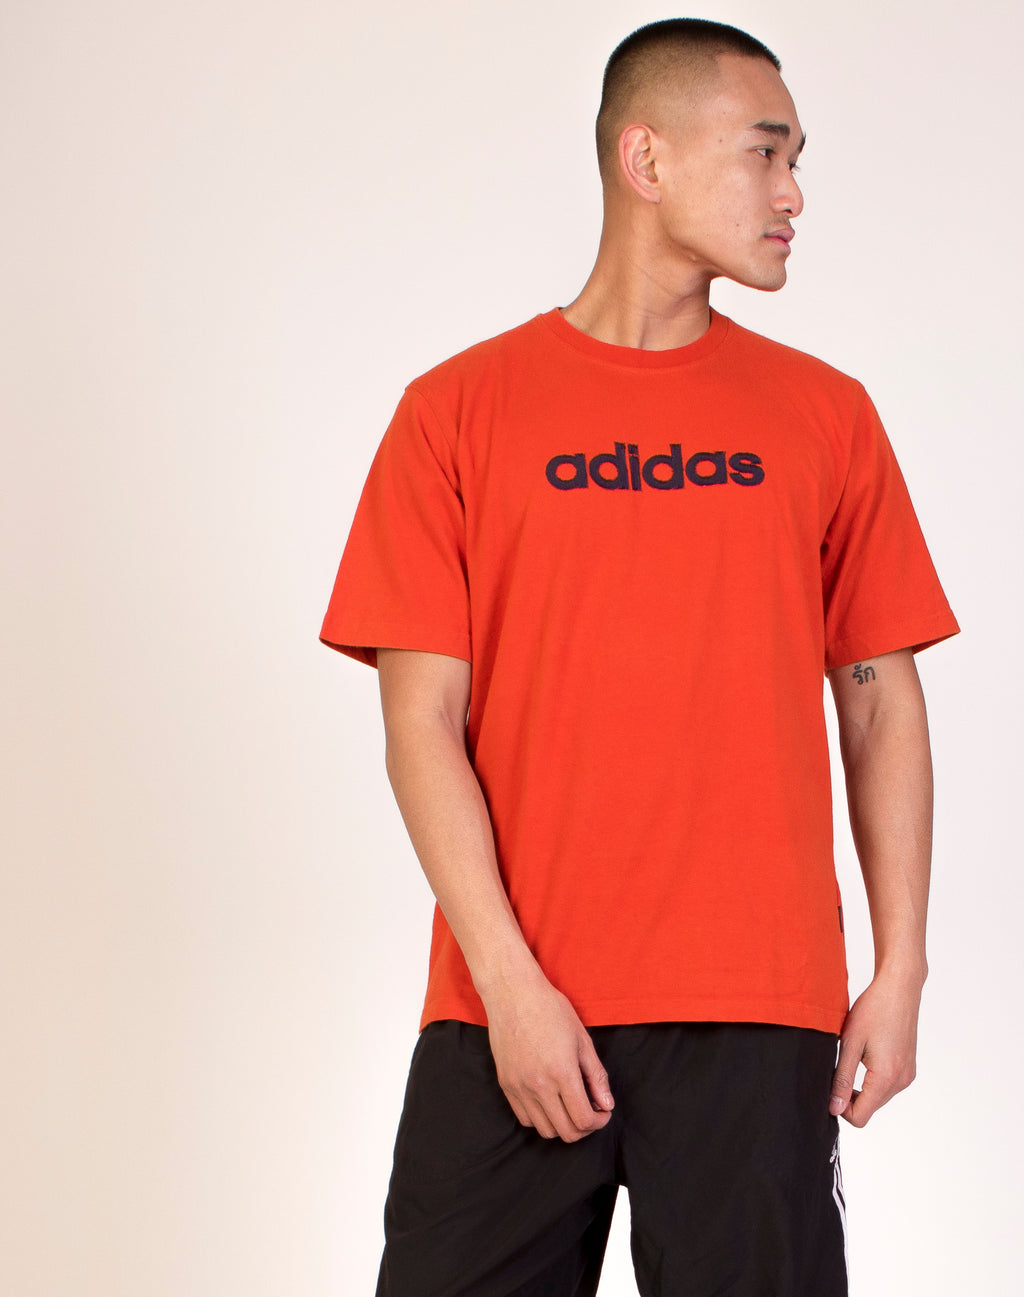 ADIDAS ORANGE LOGO T-SHIRT